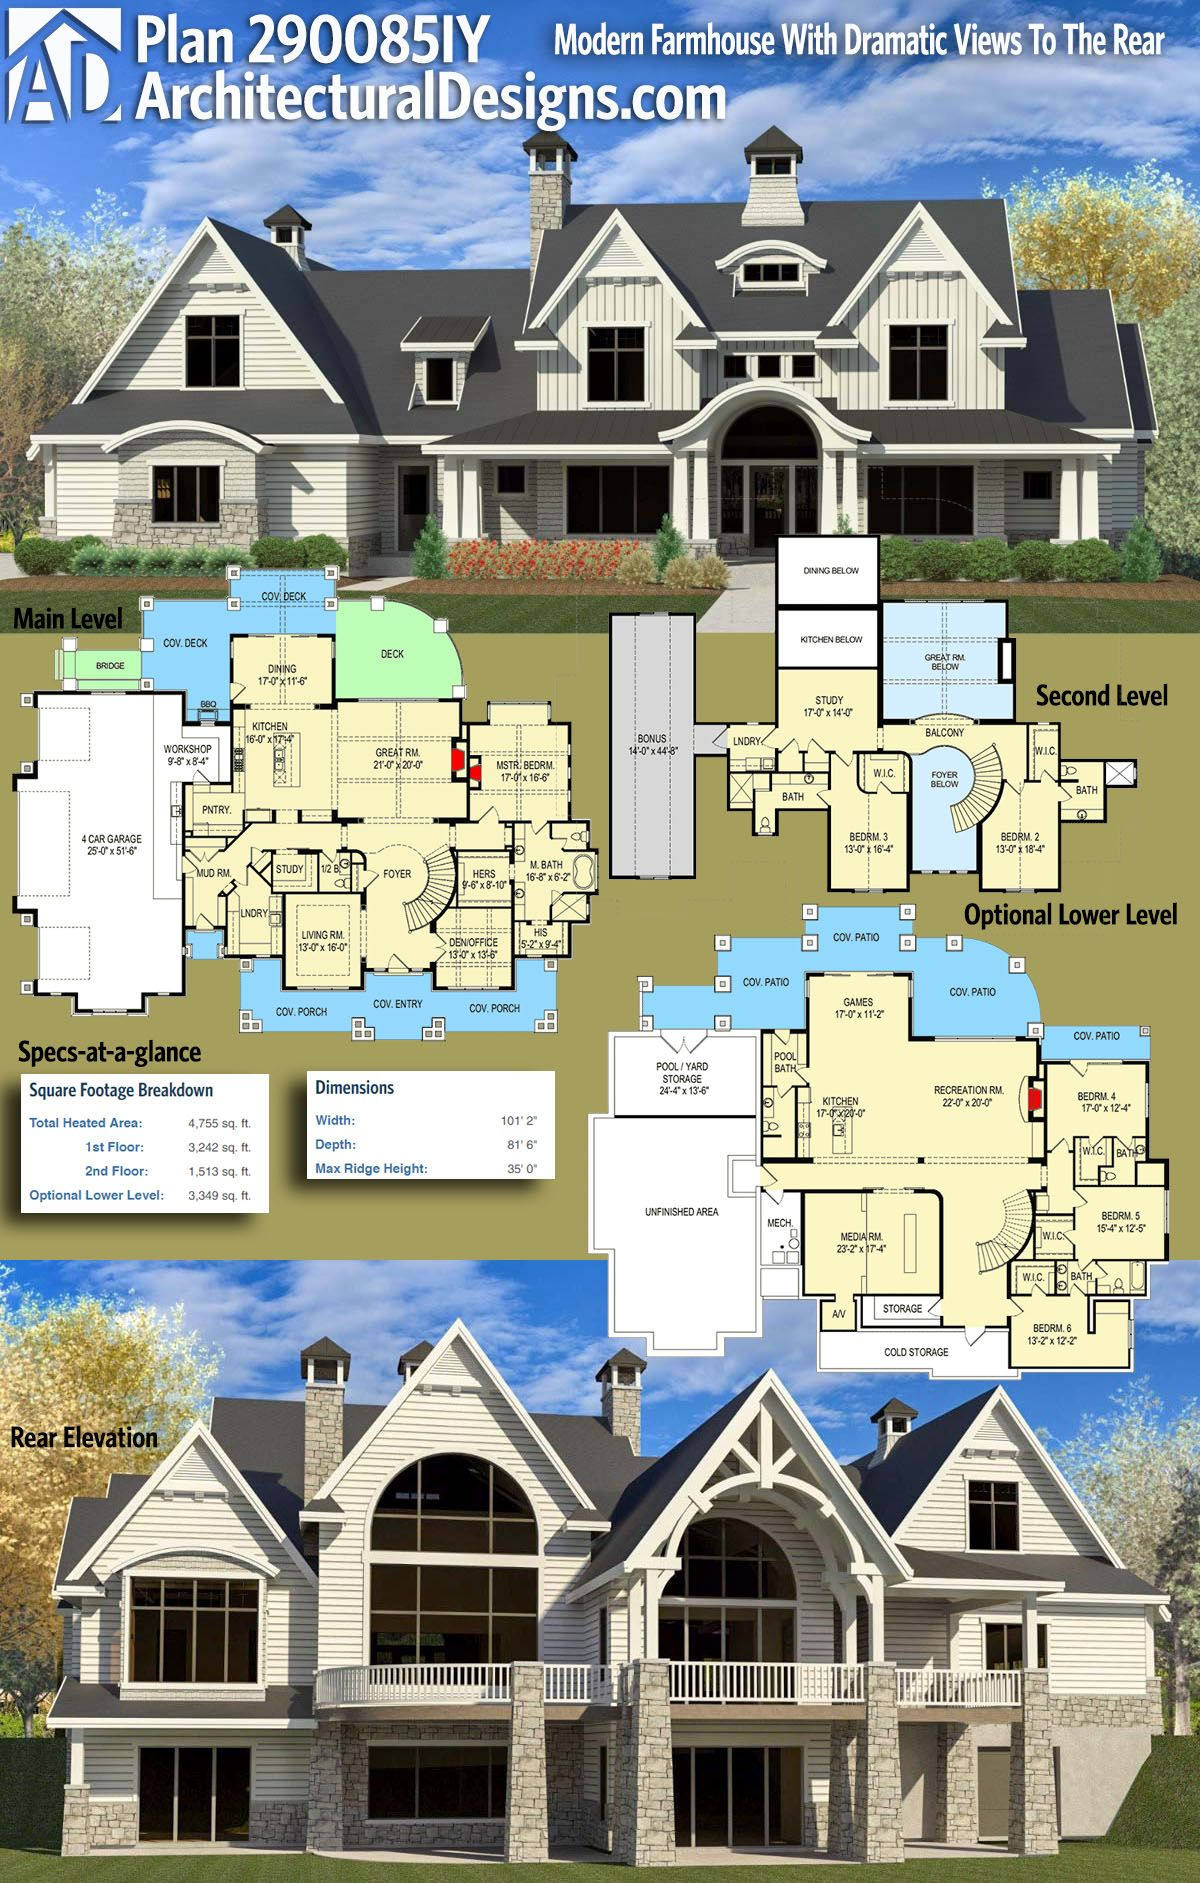 Architectural Designs Modern Farmhouse Plan 290085IY Gives You Over 4,700  Square Feet Of Heated Living Space, 3+ Beds And 3.5+ Baths With An Optional  Lower ...